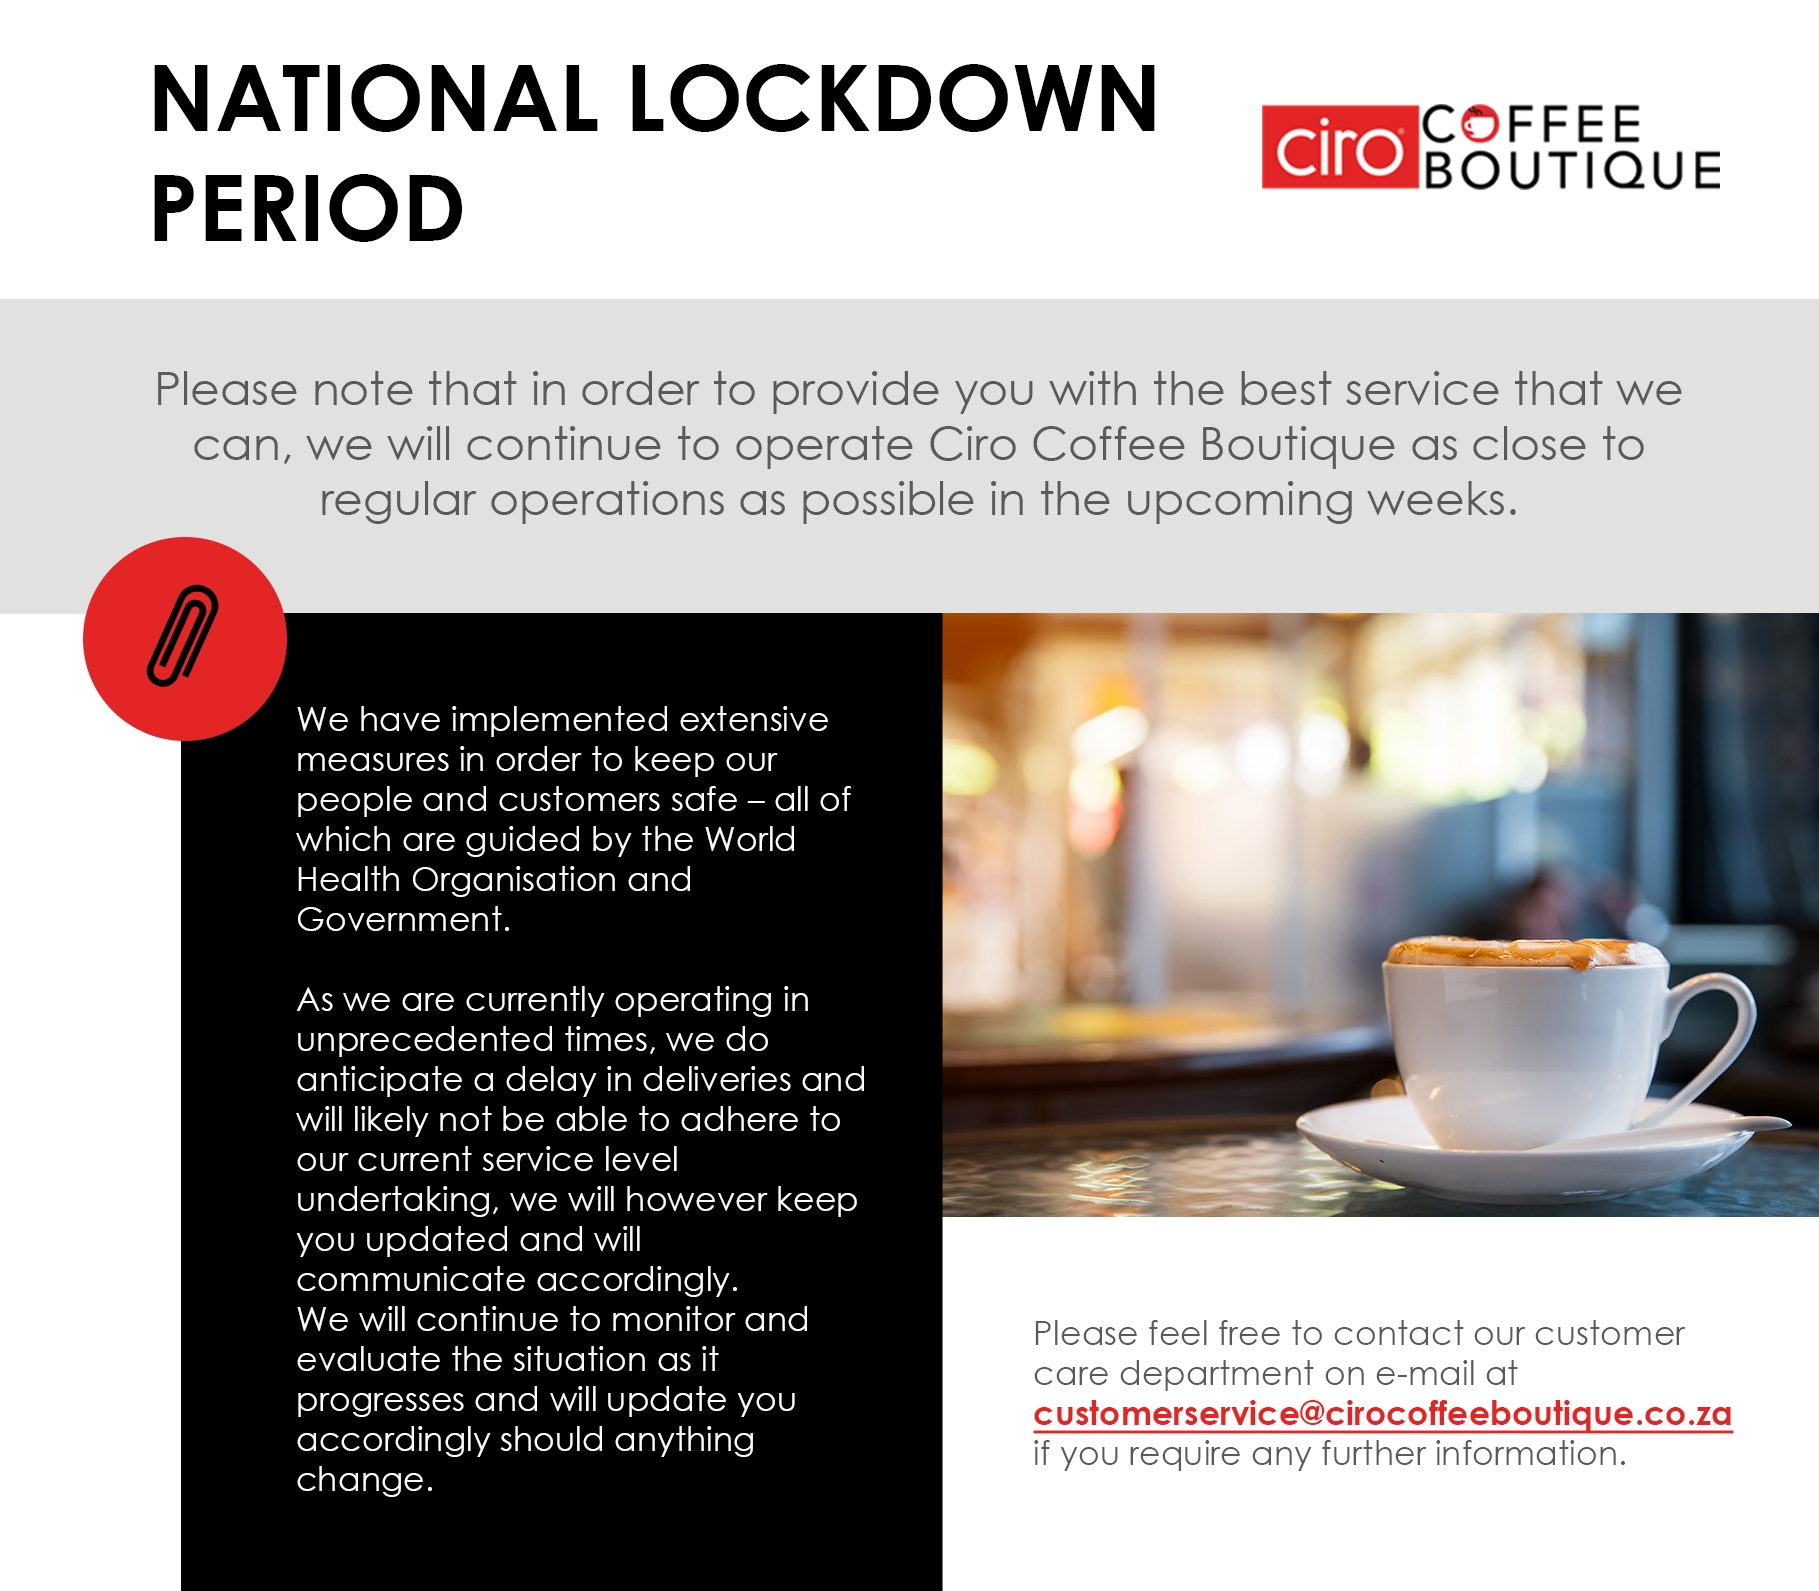 national lockdown communication